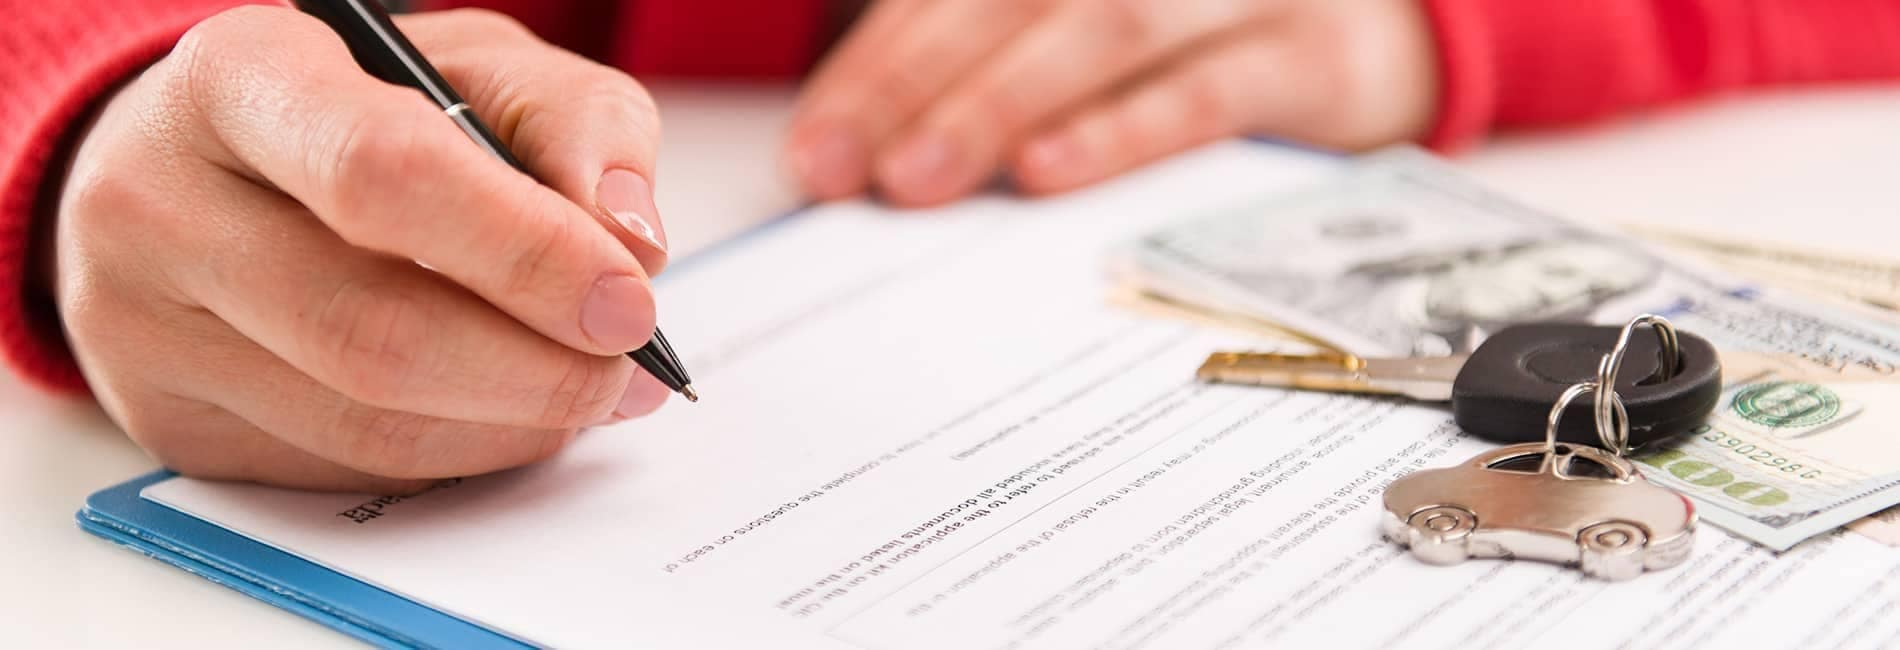 person filling out finance paperwork